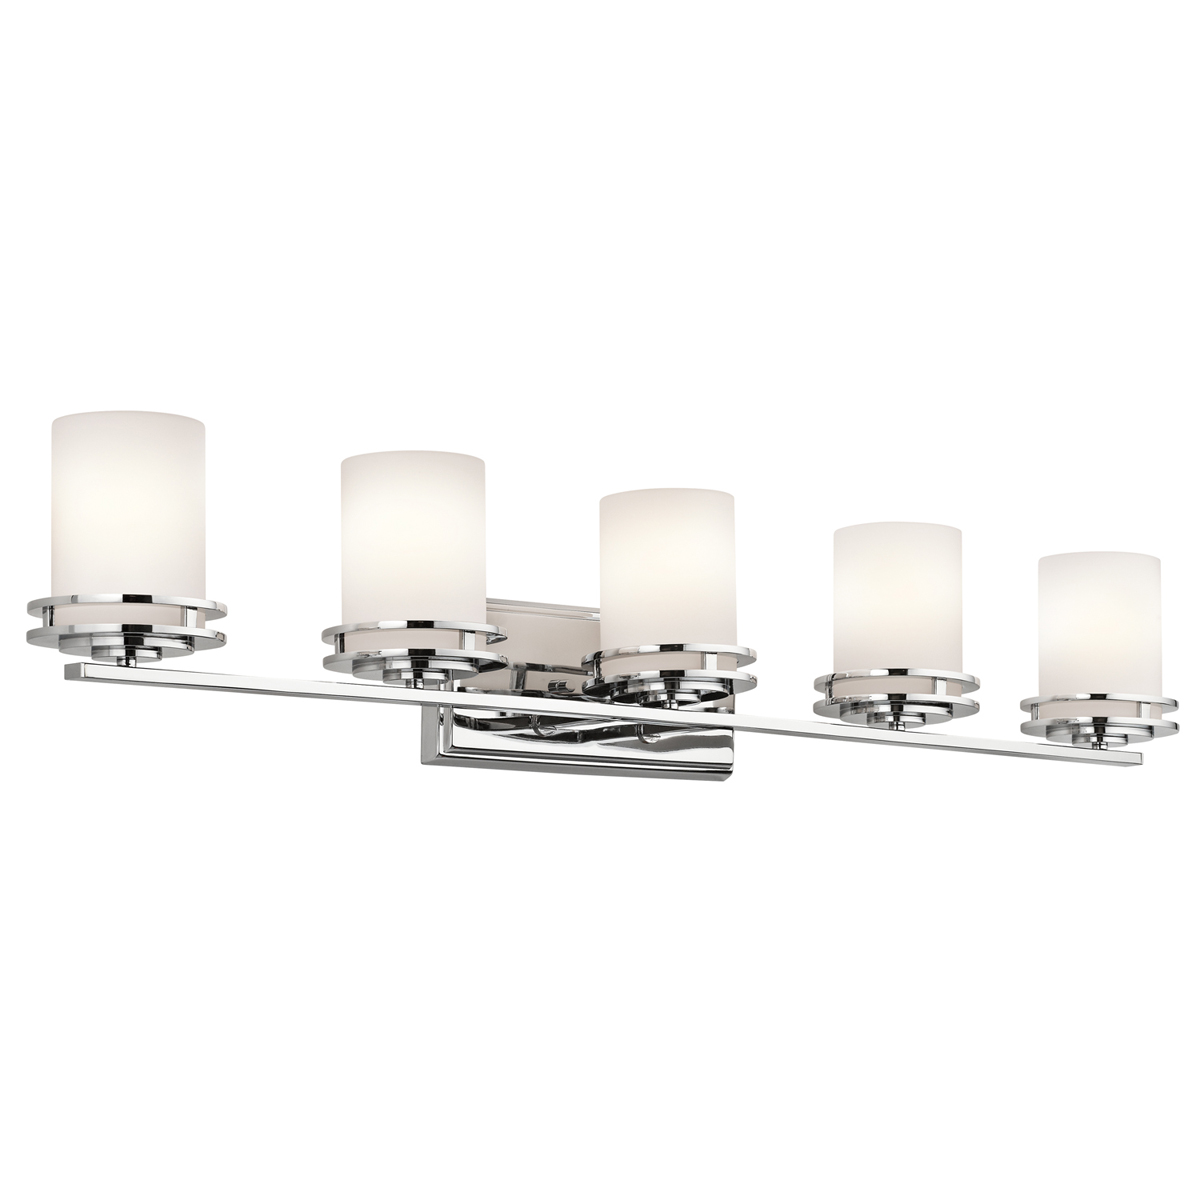 Bathroom 5 Light Fixtures Of Kichler Lighting 5085ch Hendrik 5 Light Bath Fixture In